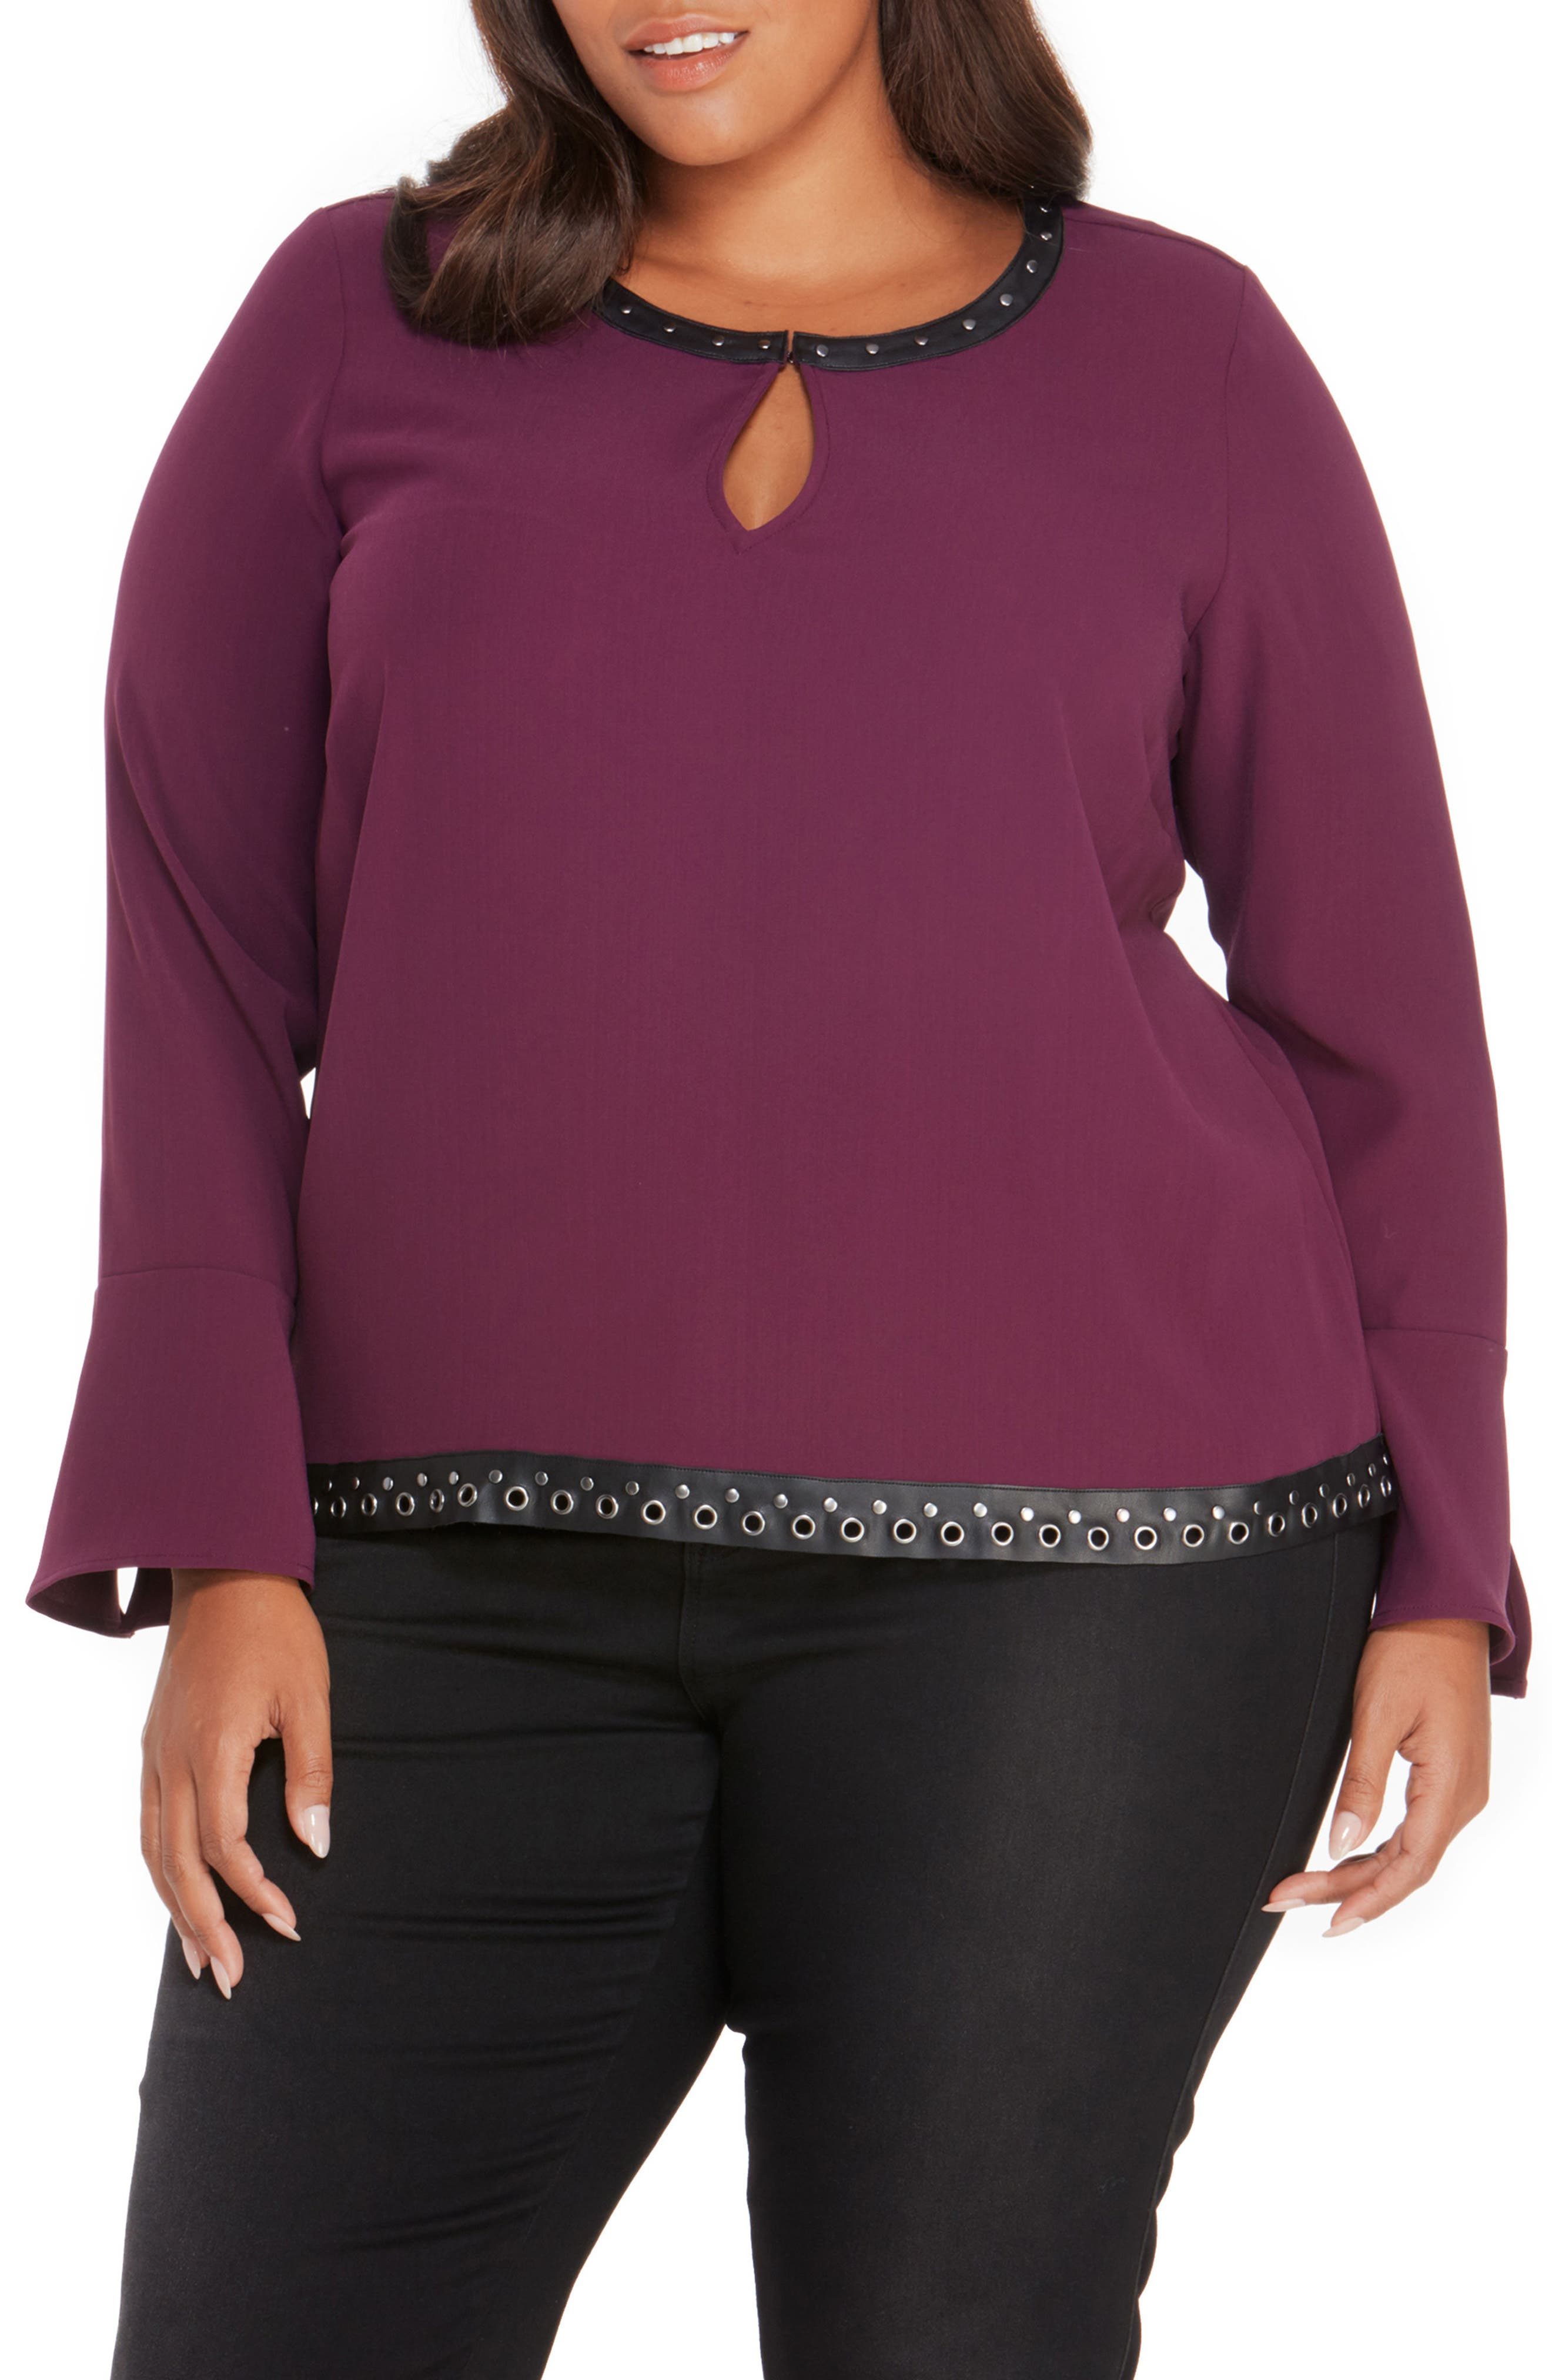 REBEL WILSON X ANGELS Studded Faux Leather Trim Top (Plus Size)